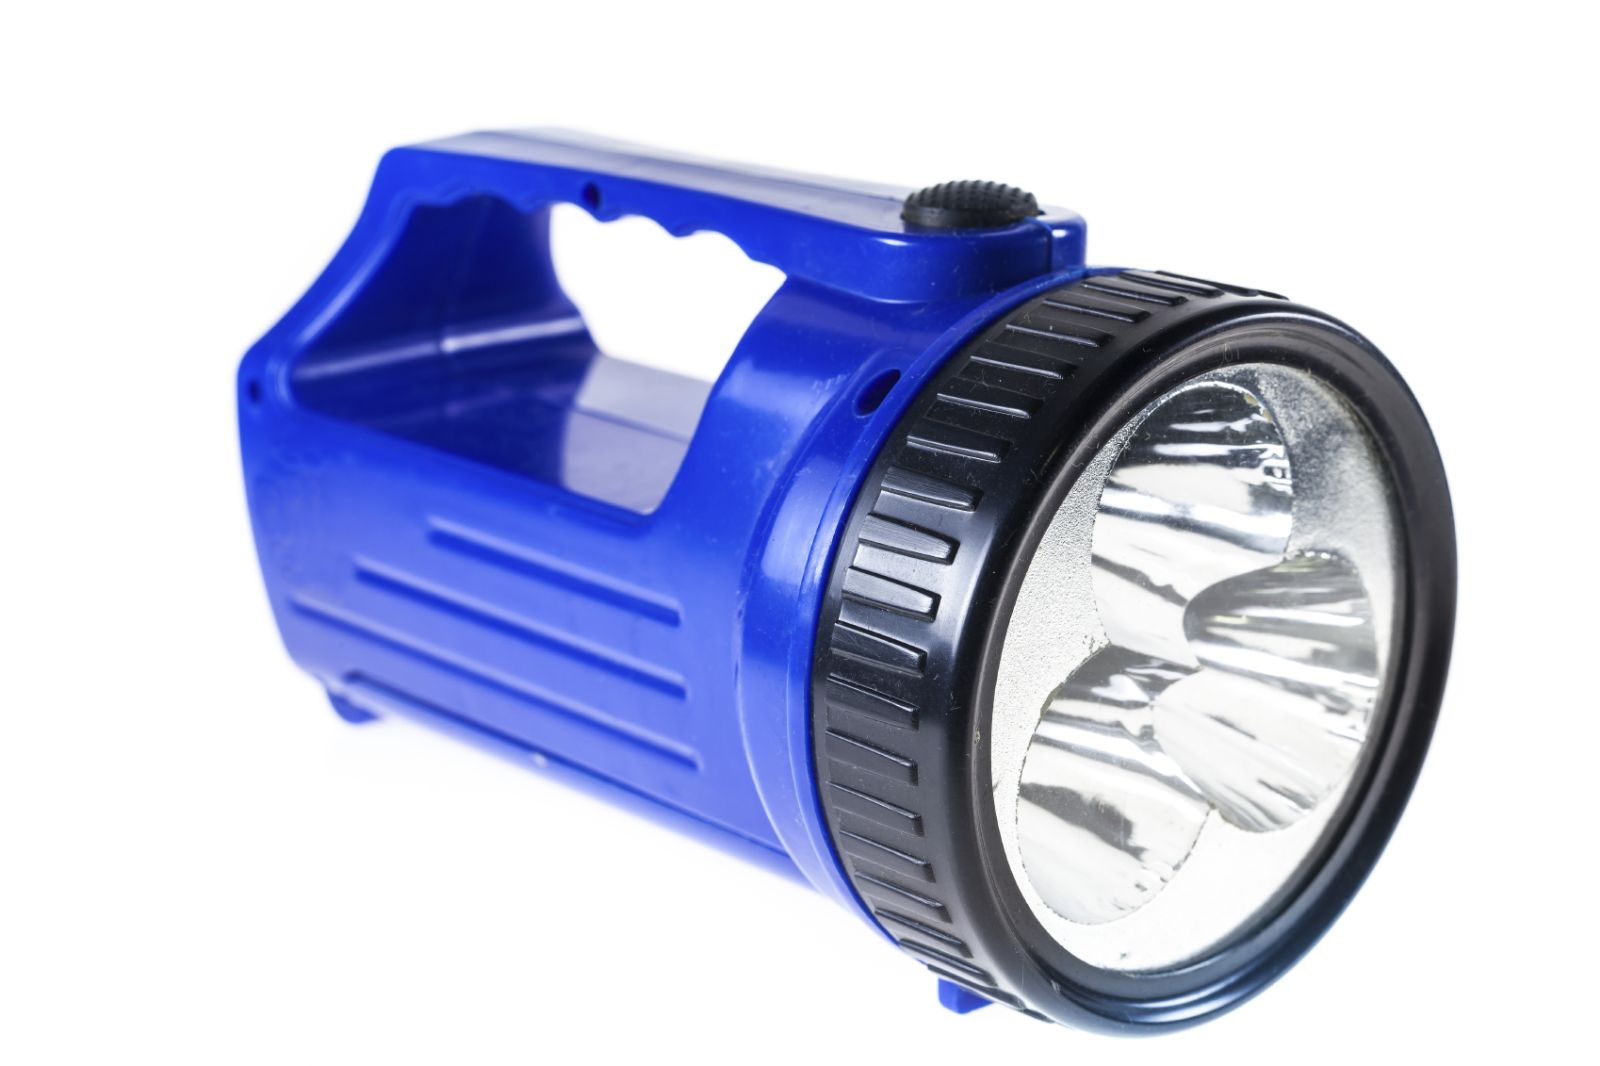 Image of a blue flashlight